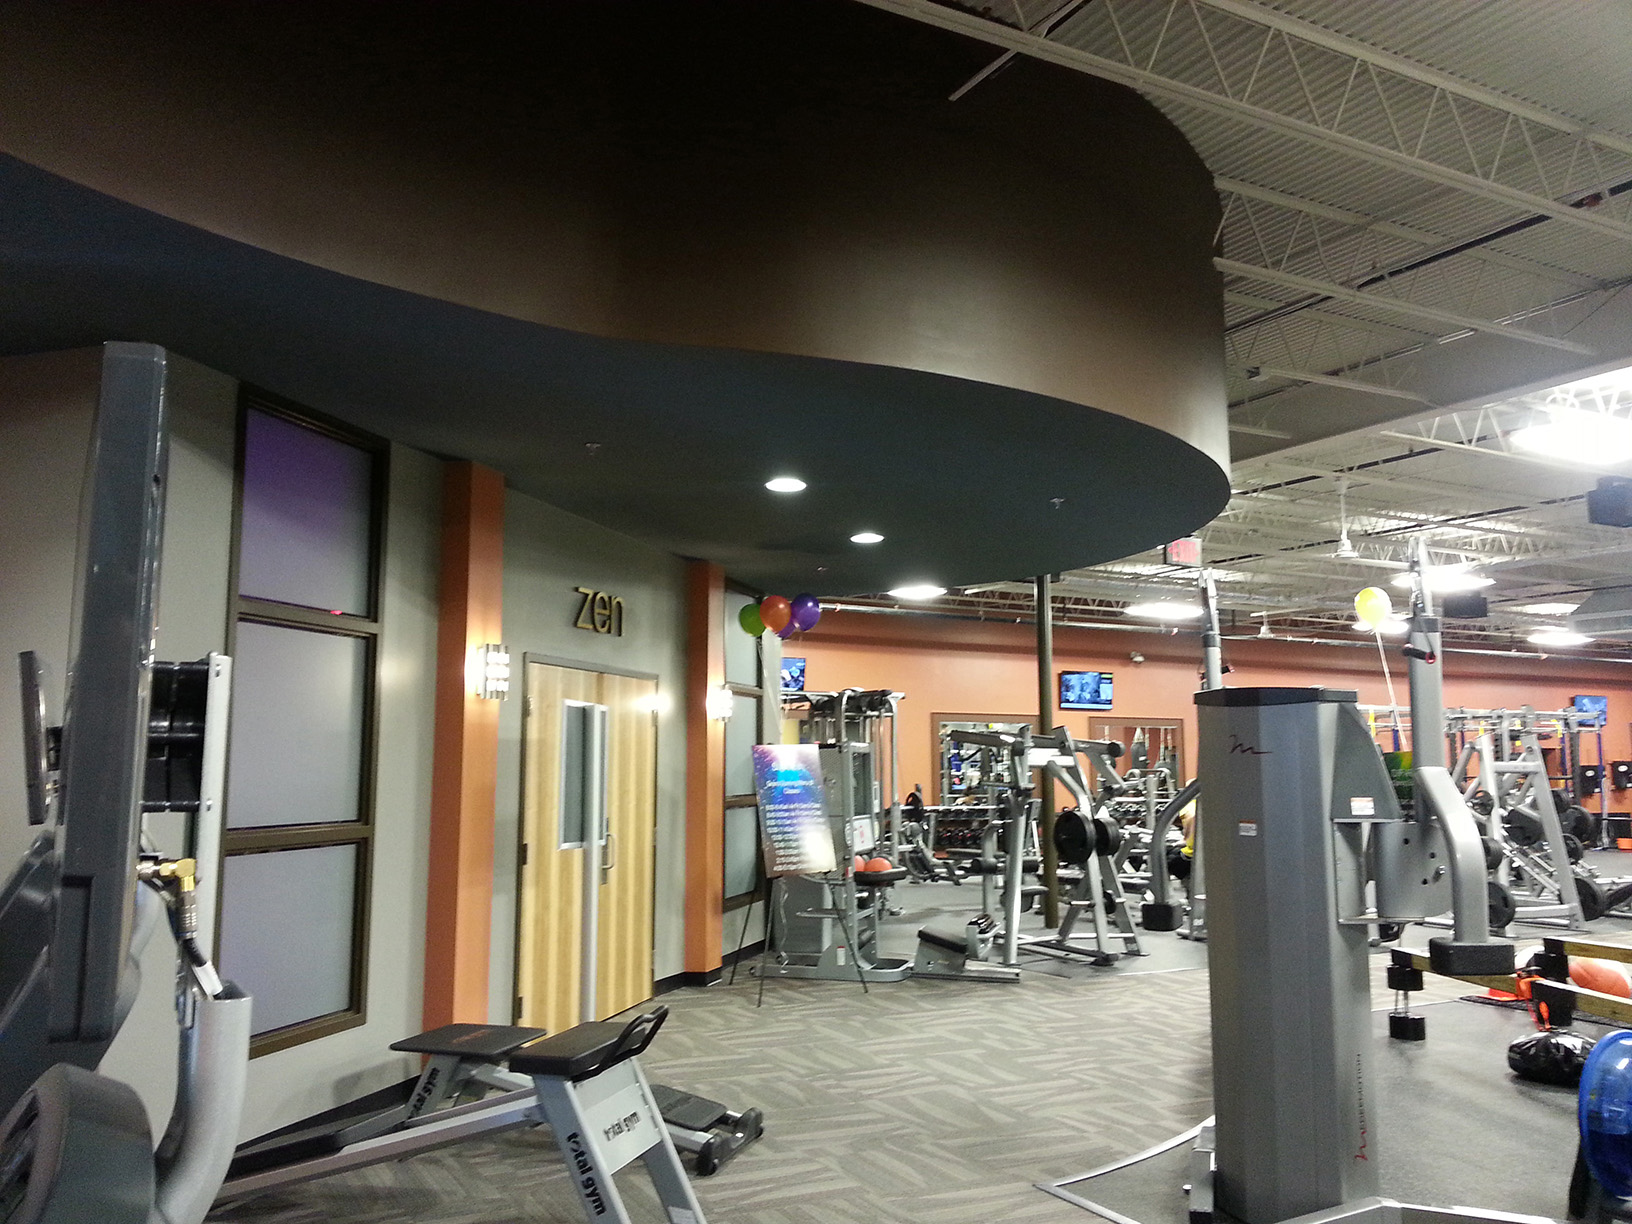 residential golds gym - HD1632×1224